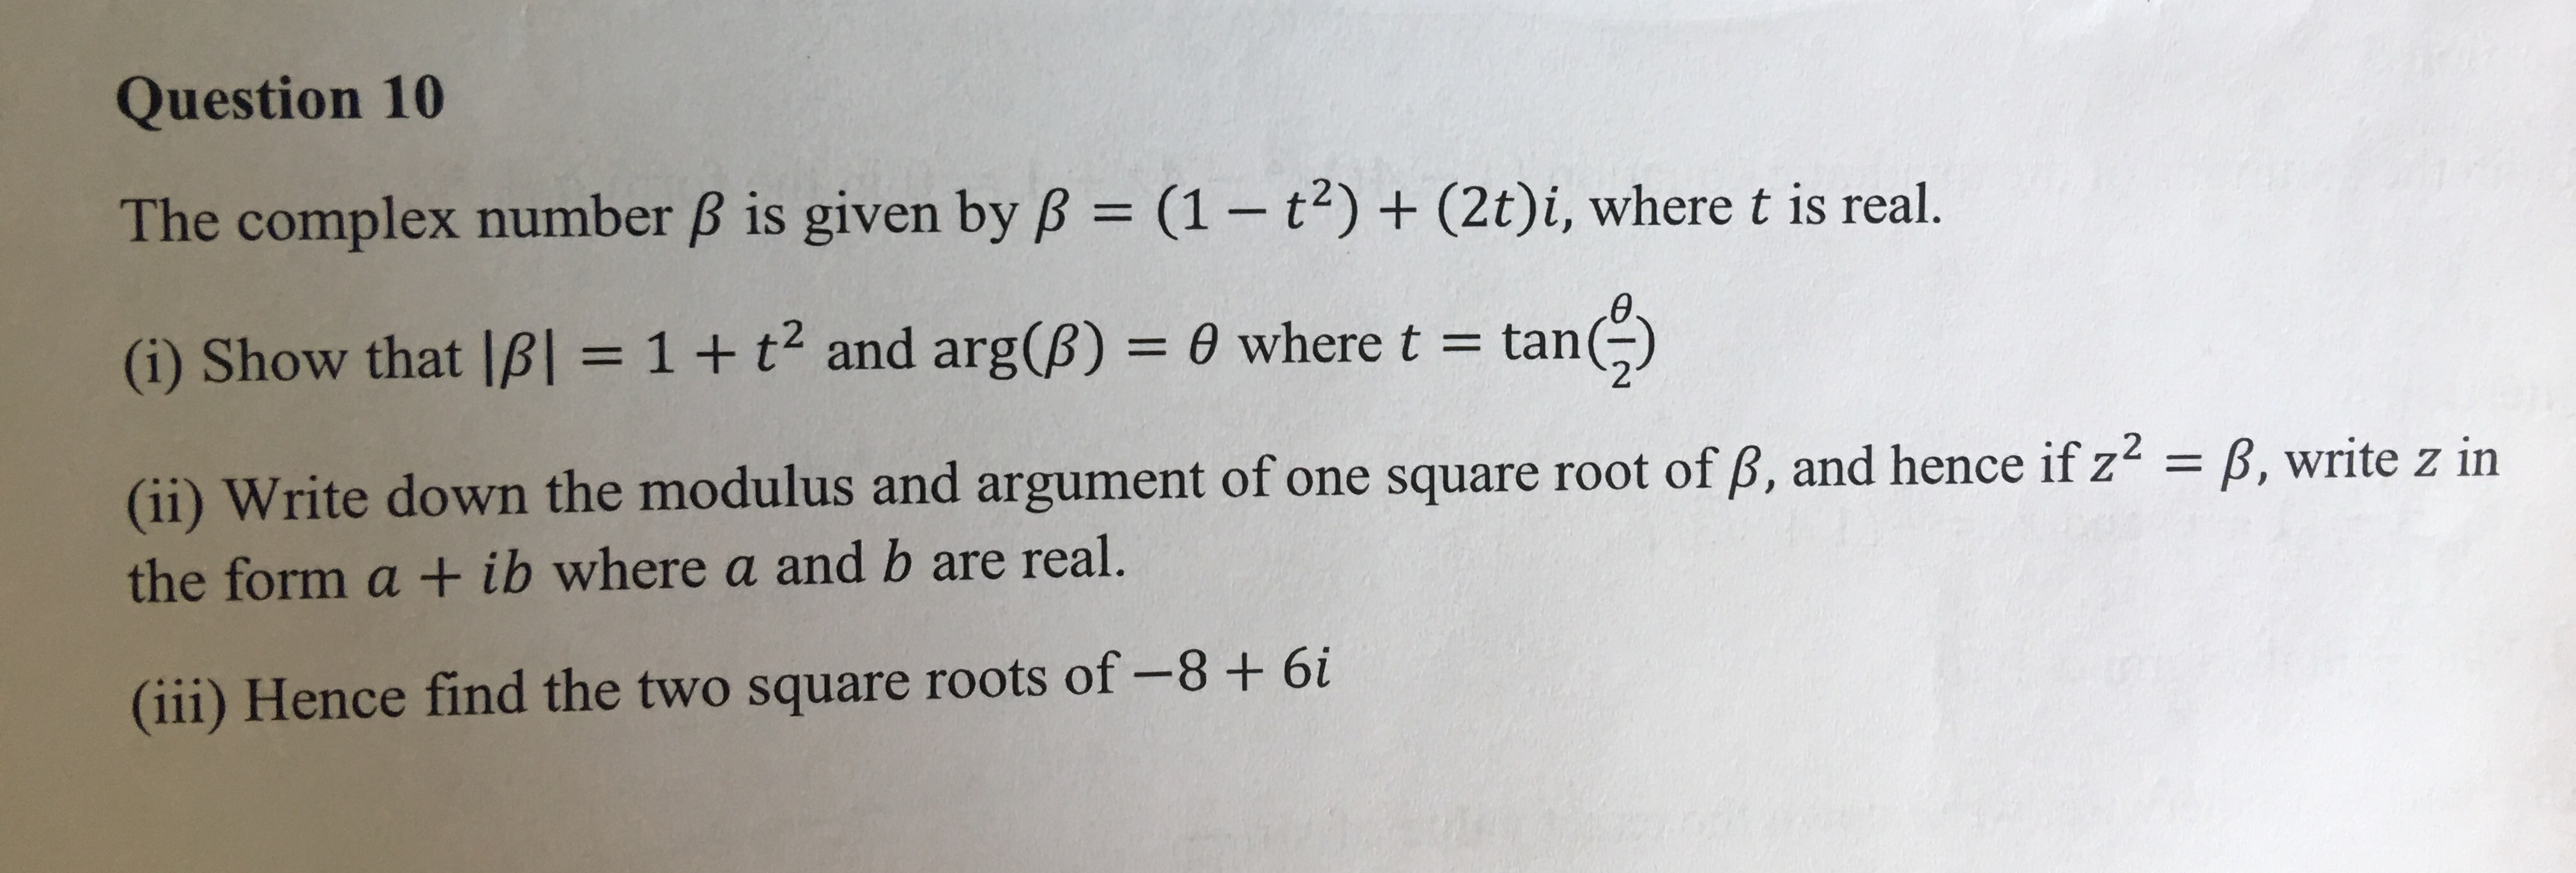 Question 10 The complex number B is given by B (1- t) + (2t)i, where t is real. II tan) (i) Show that IB = 1 + t2 and arg(B) 0 where t = t (ii) Write down the modulus and argument of one square root of B, and hence if z2 = B, write z in the form a + ib where a and b are real. (iii) Hence find the two square roots of -8+ 6i